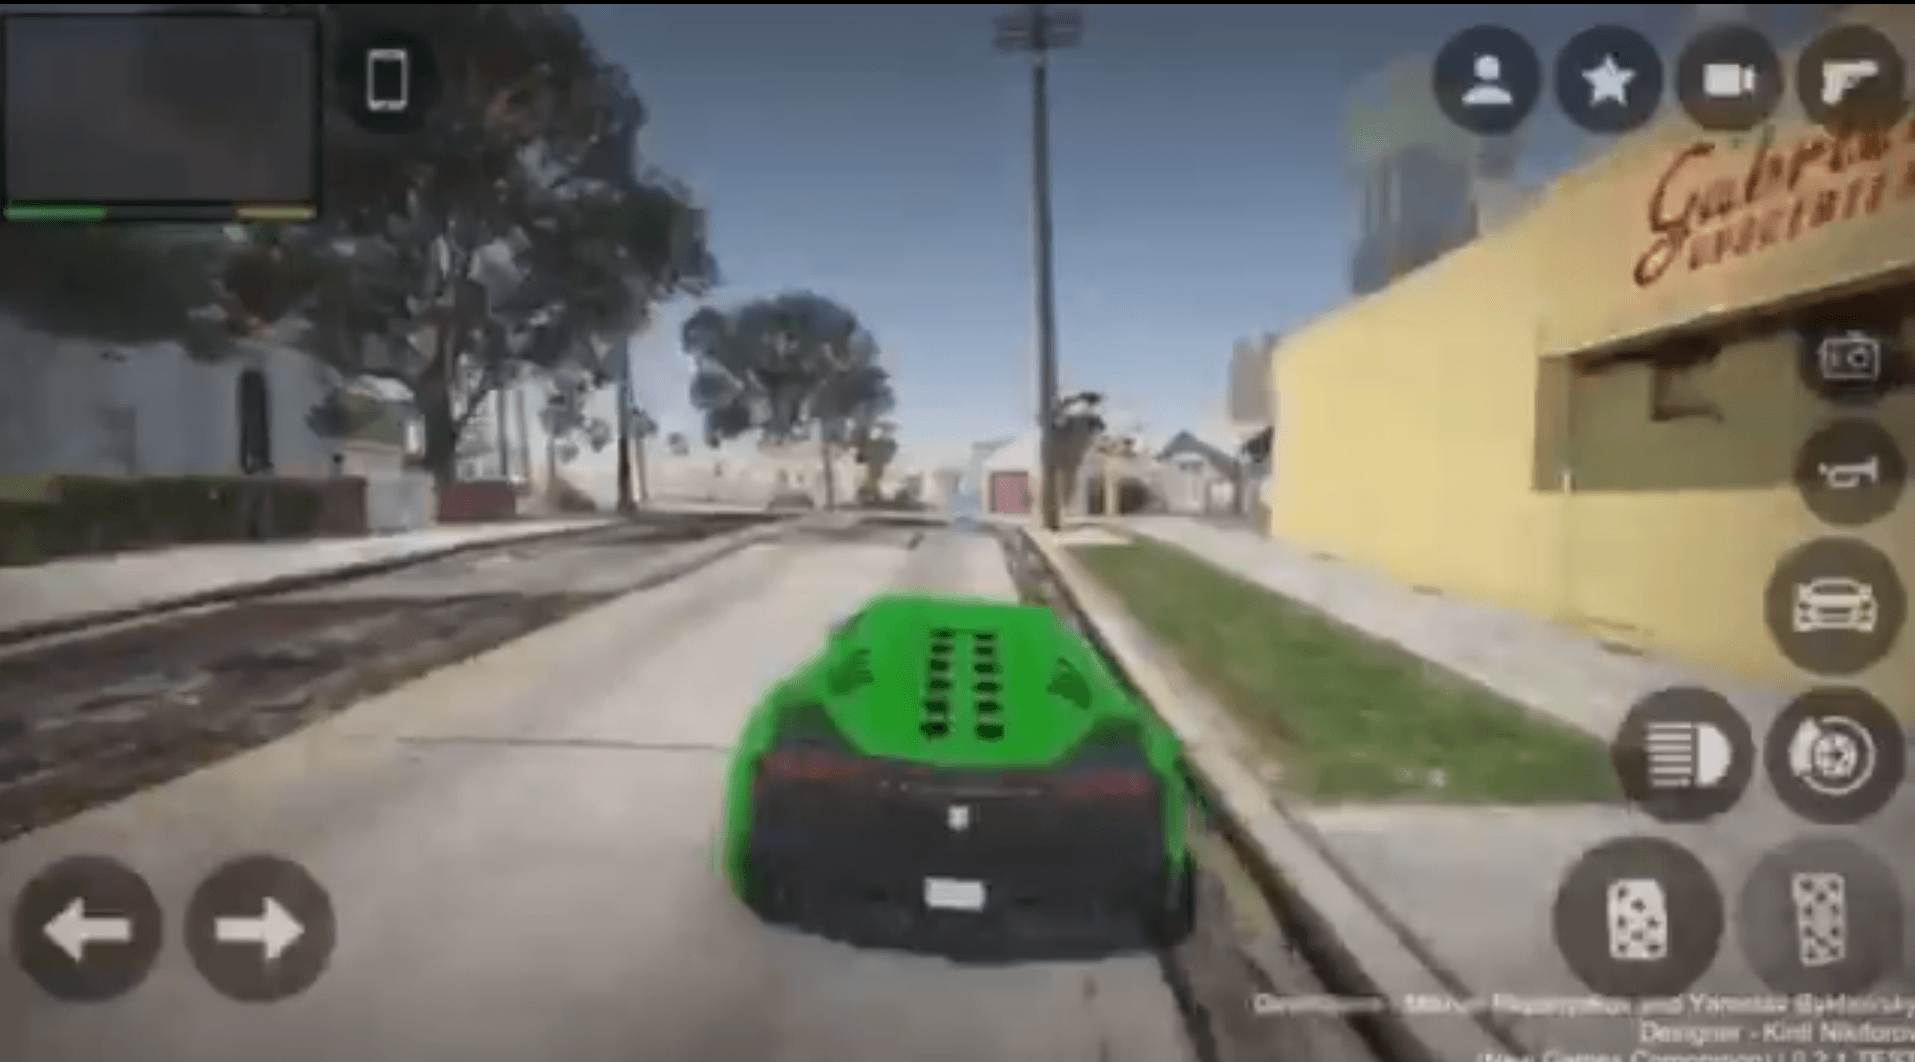 Grand Theft Auto 5 Android Port Now Available, Download Links Here